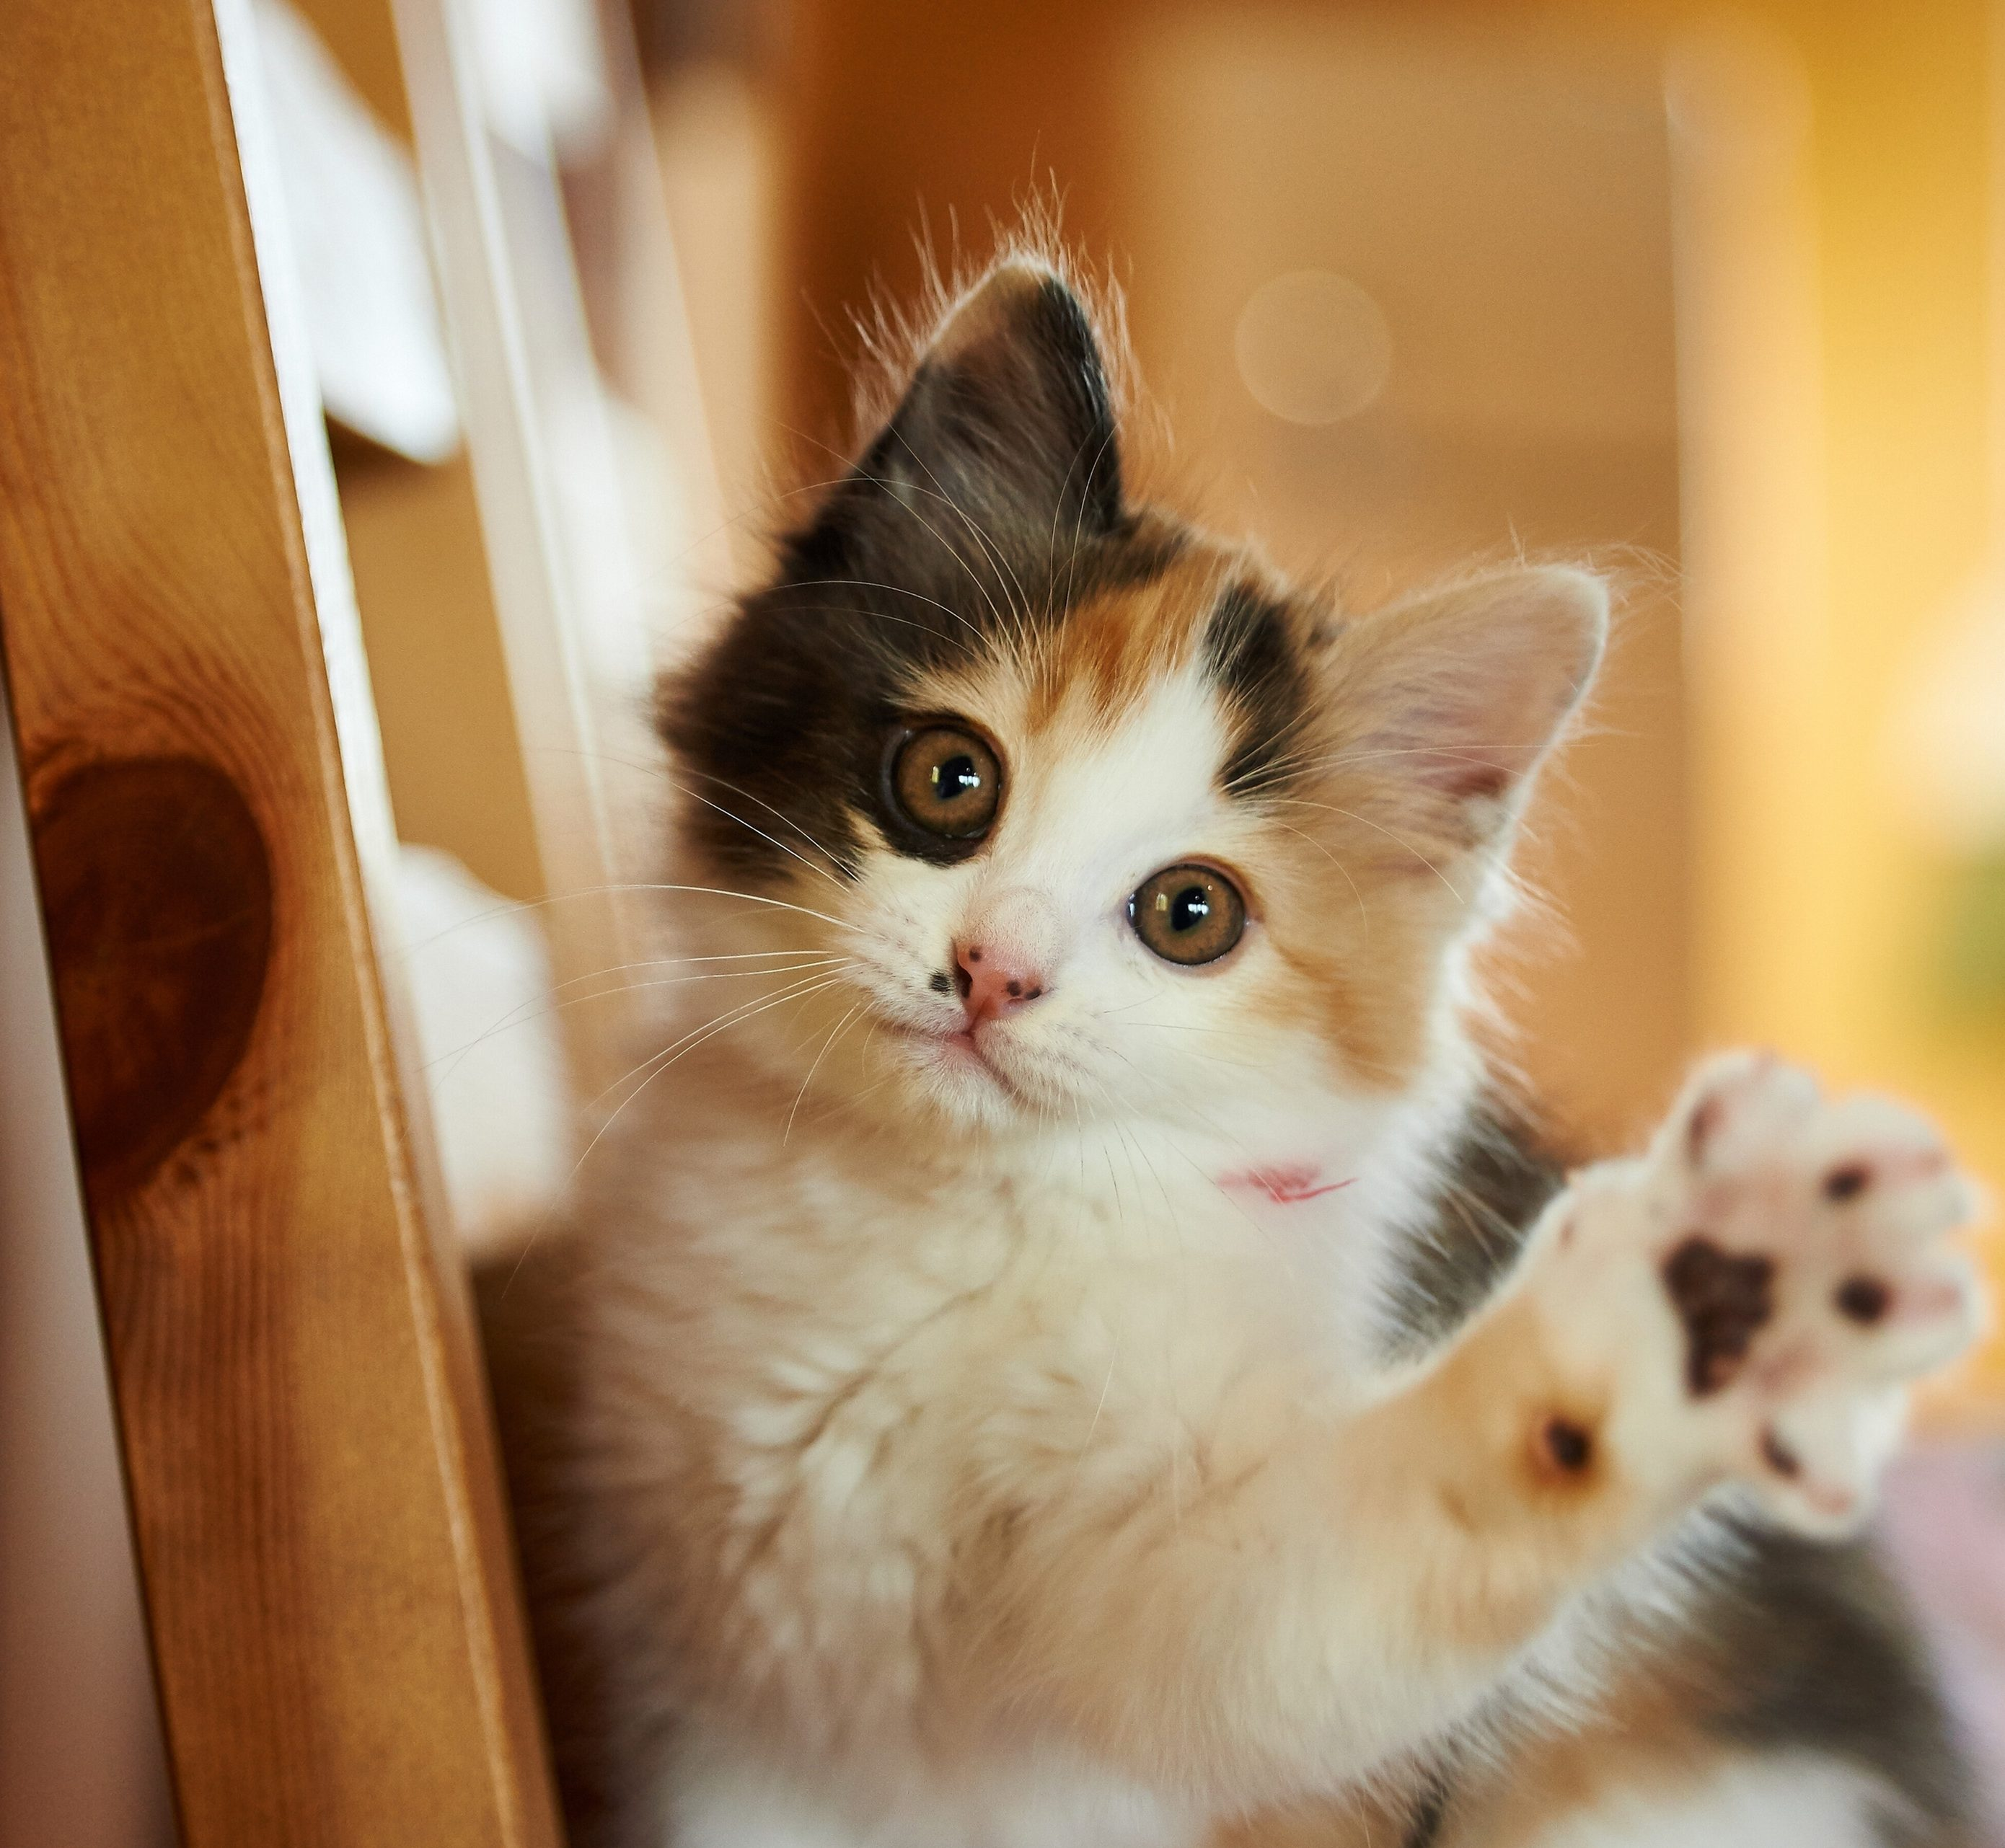 Cat Cute Animal 4k Wallpaper Best Wallpapers